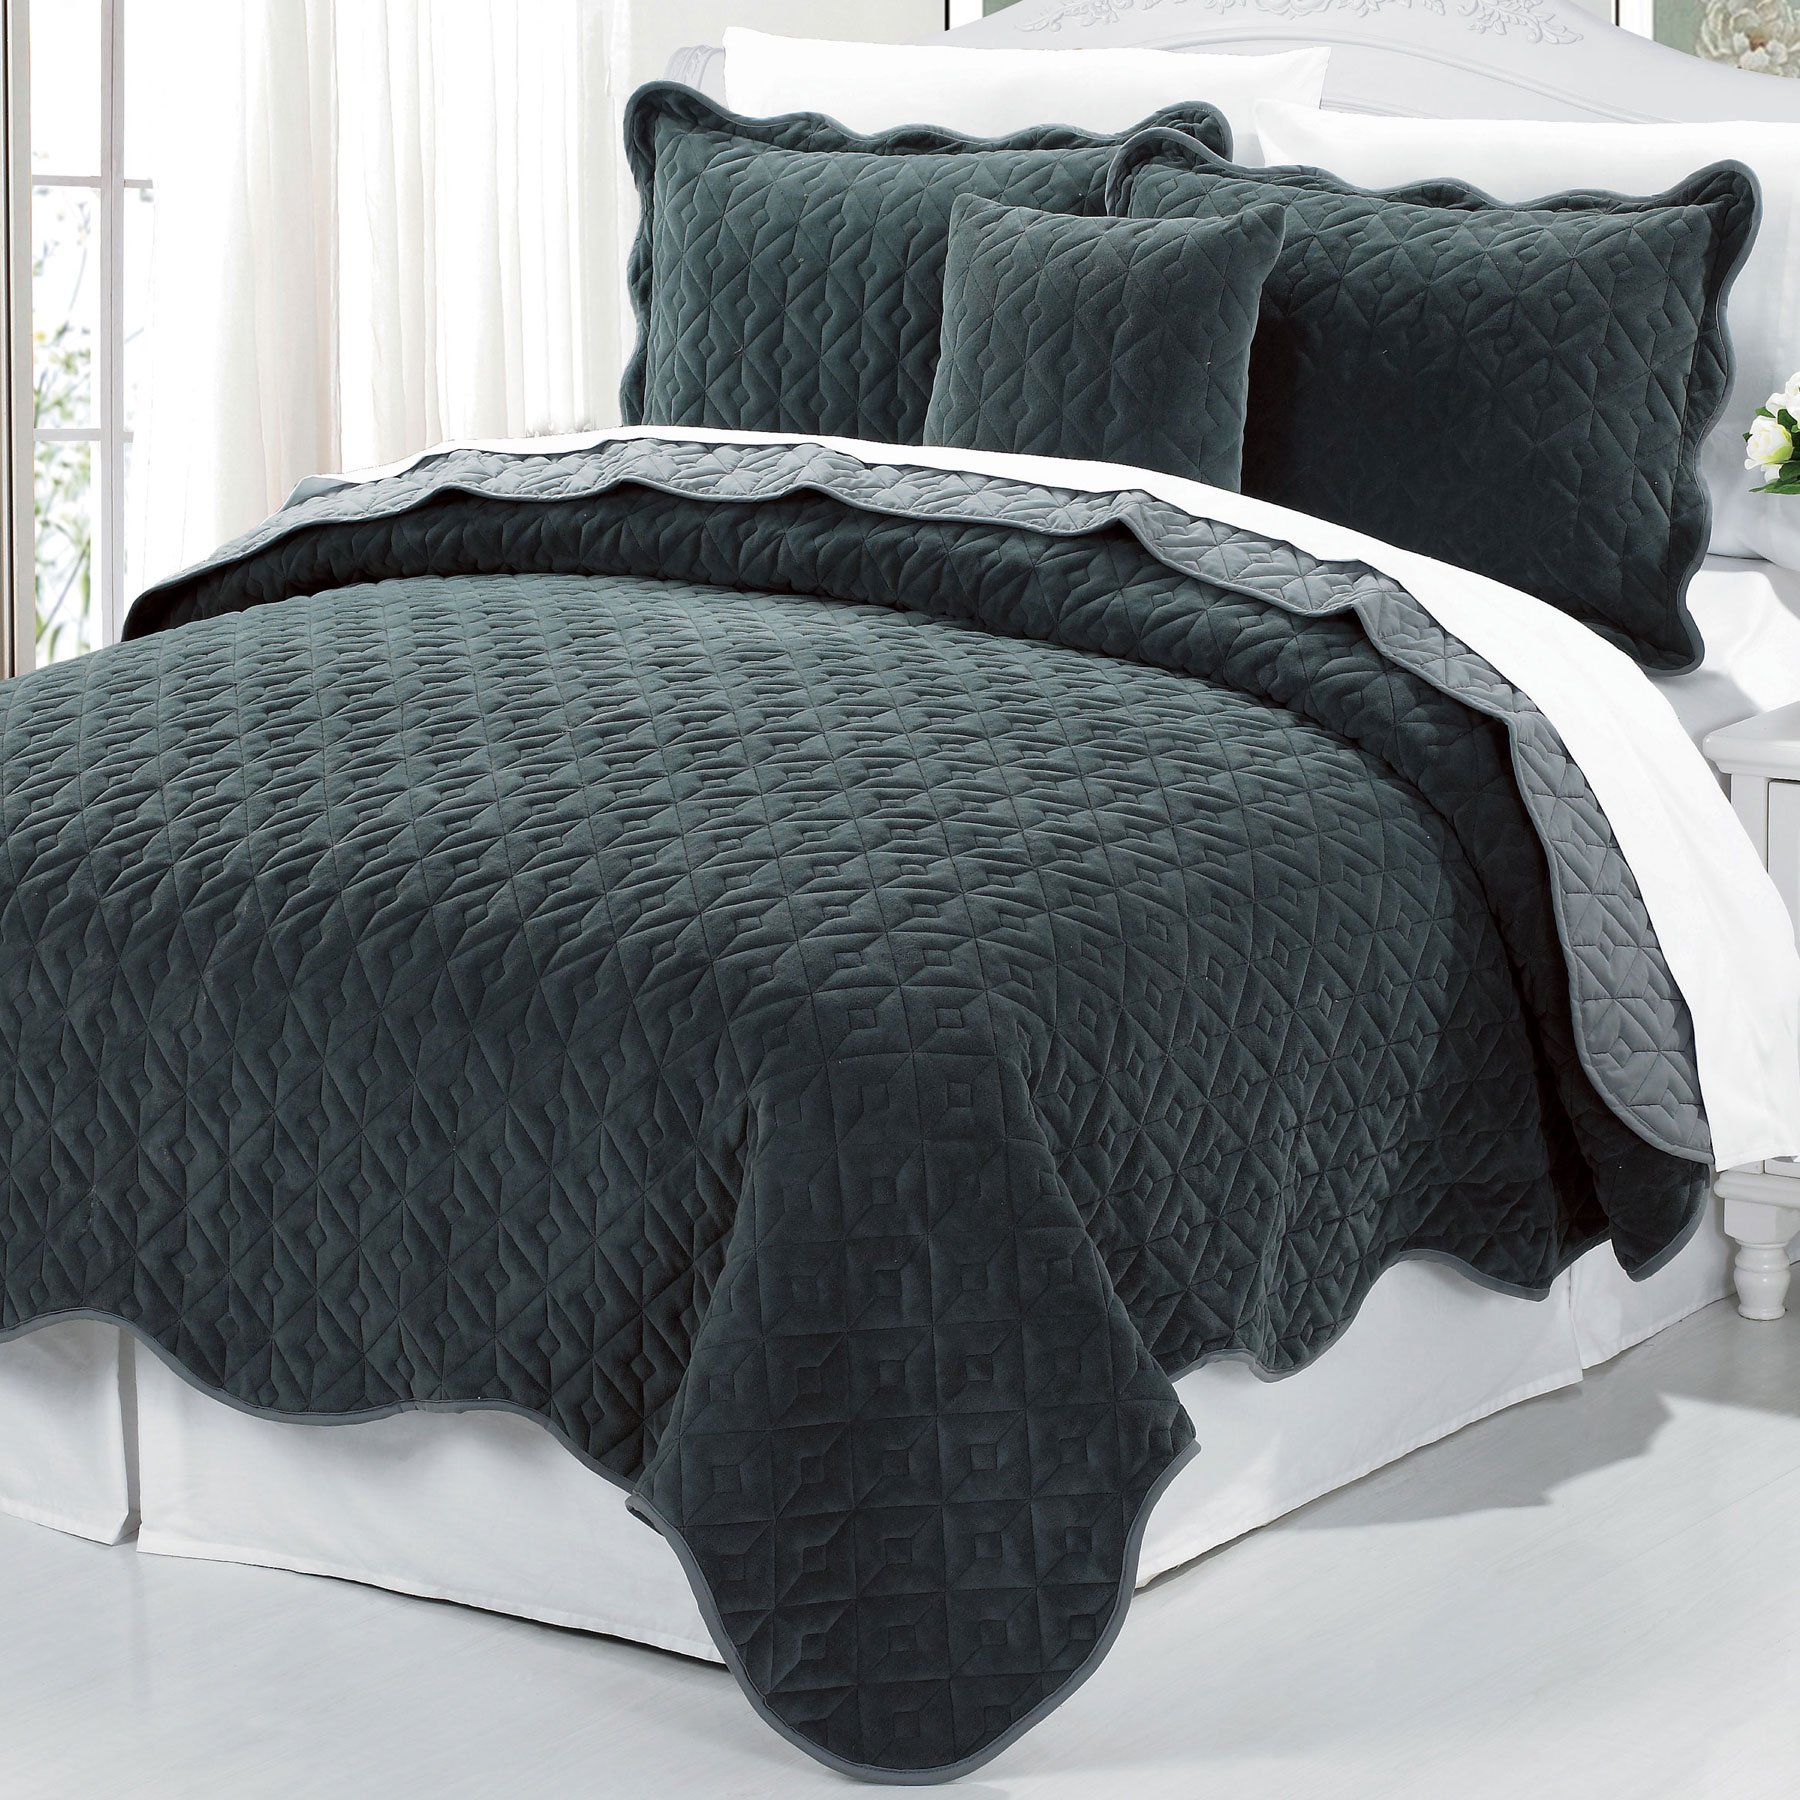 Serenta Square Diamond 4 Piece Bedspread Set